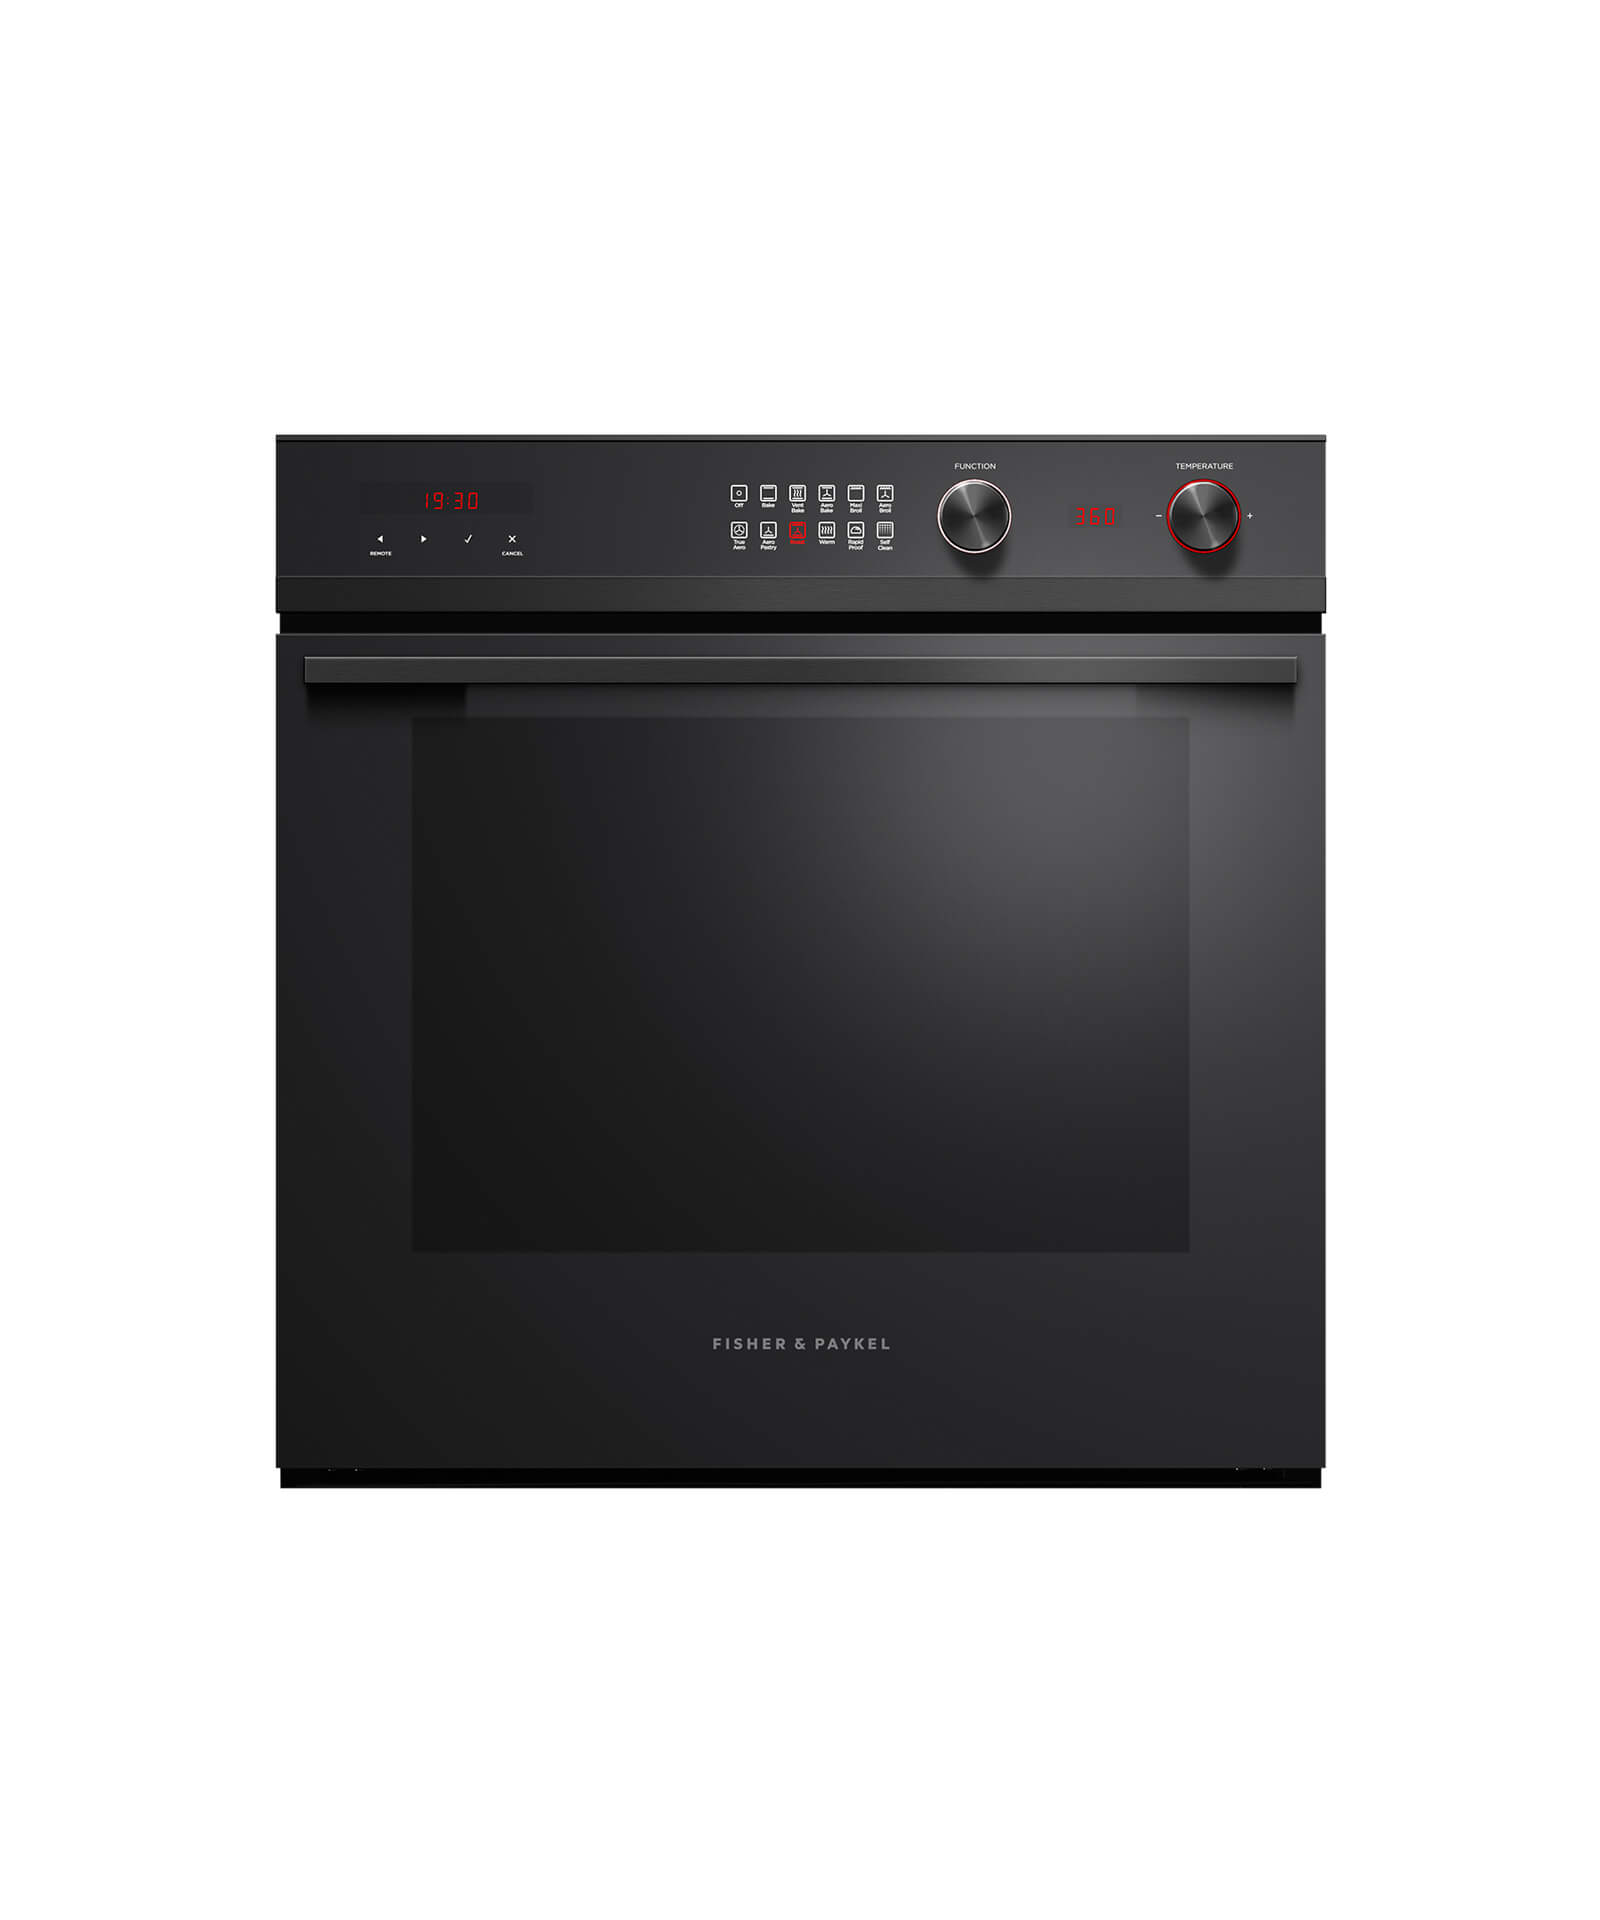 "Model: OB24SCD11PB1 | Fisher and Paykel Built-in Oven, 24"", 3 cu ft, 11 Function, Self-cleaning"